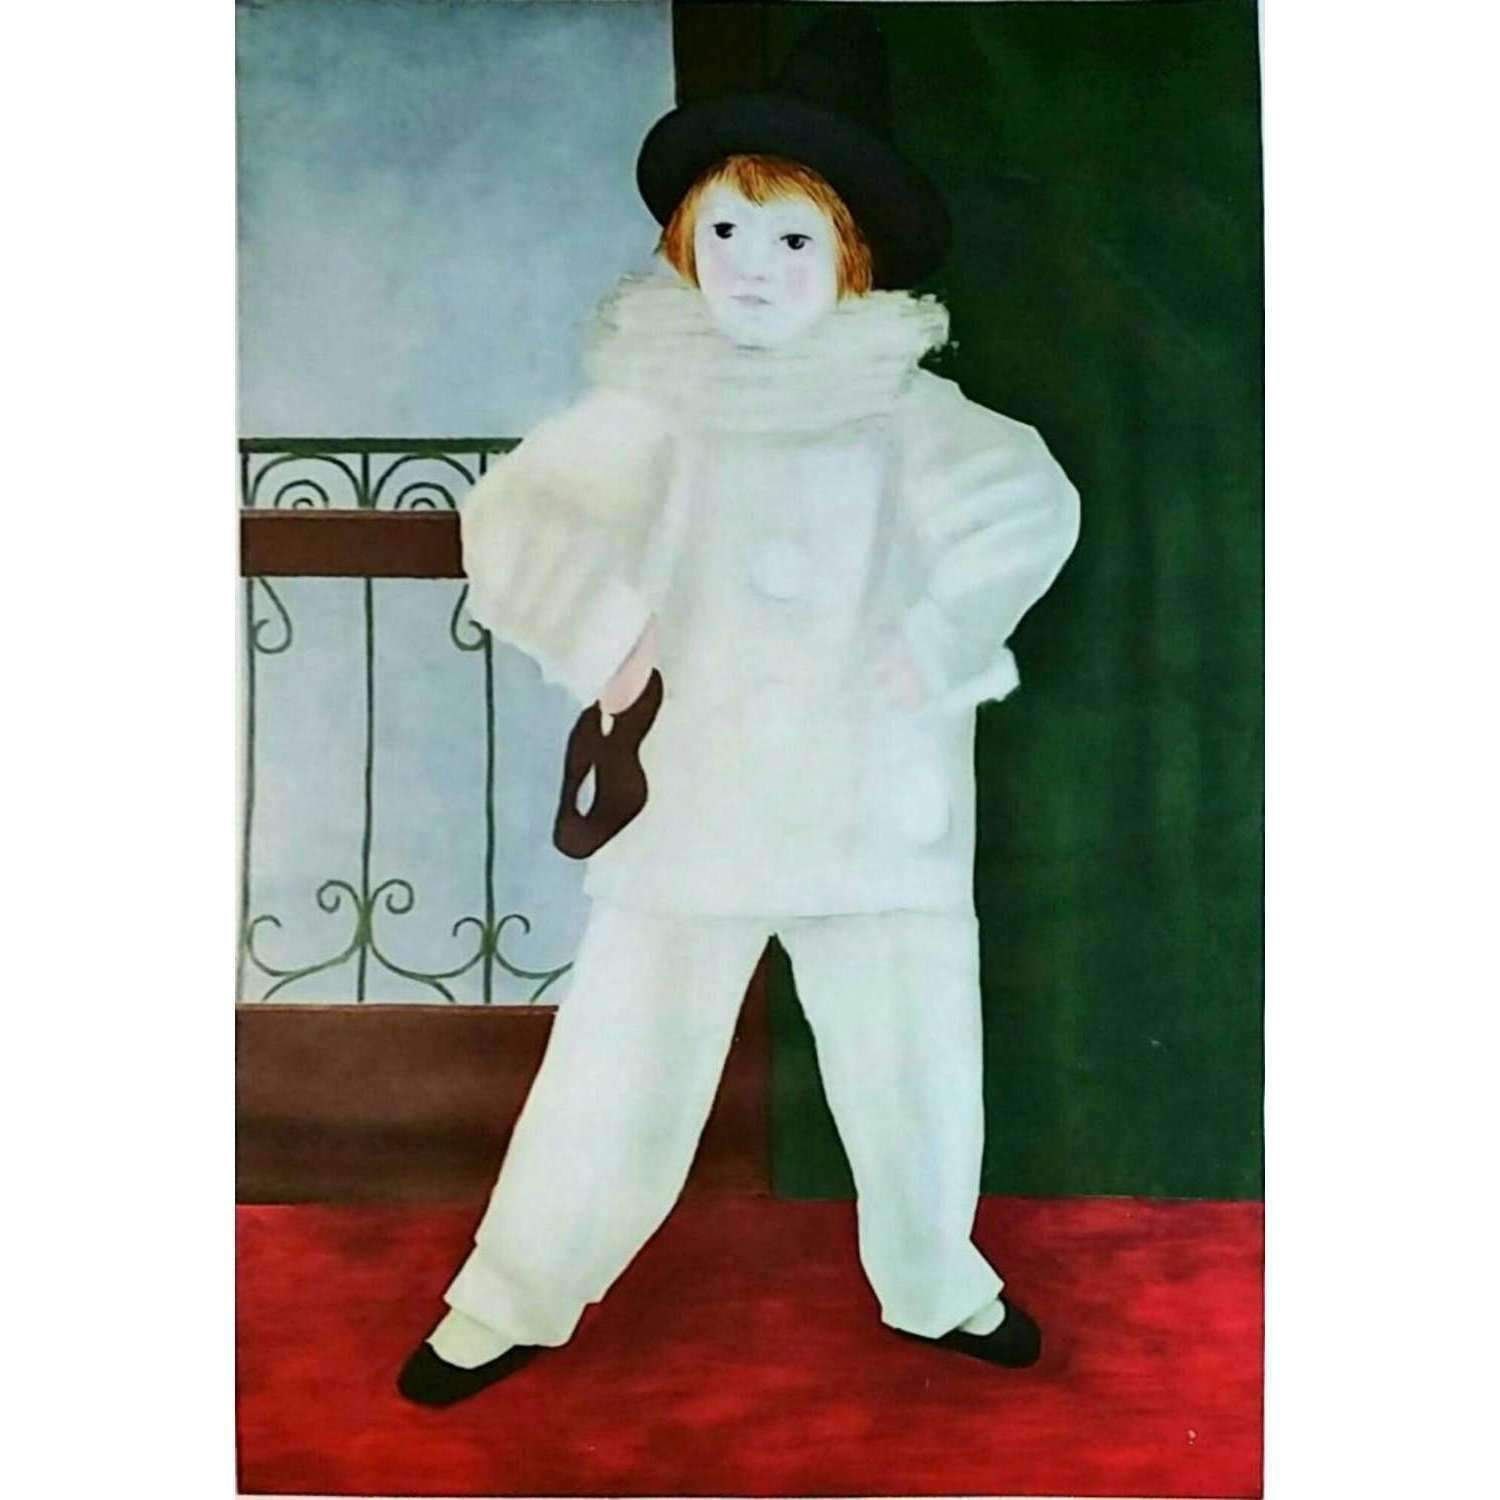 Pablo Picasso Paul as Pierrot with Mask 1940 Original Lithograph